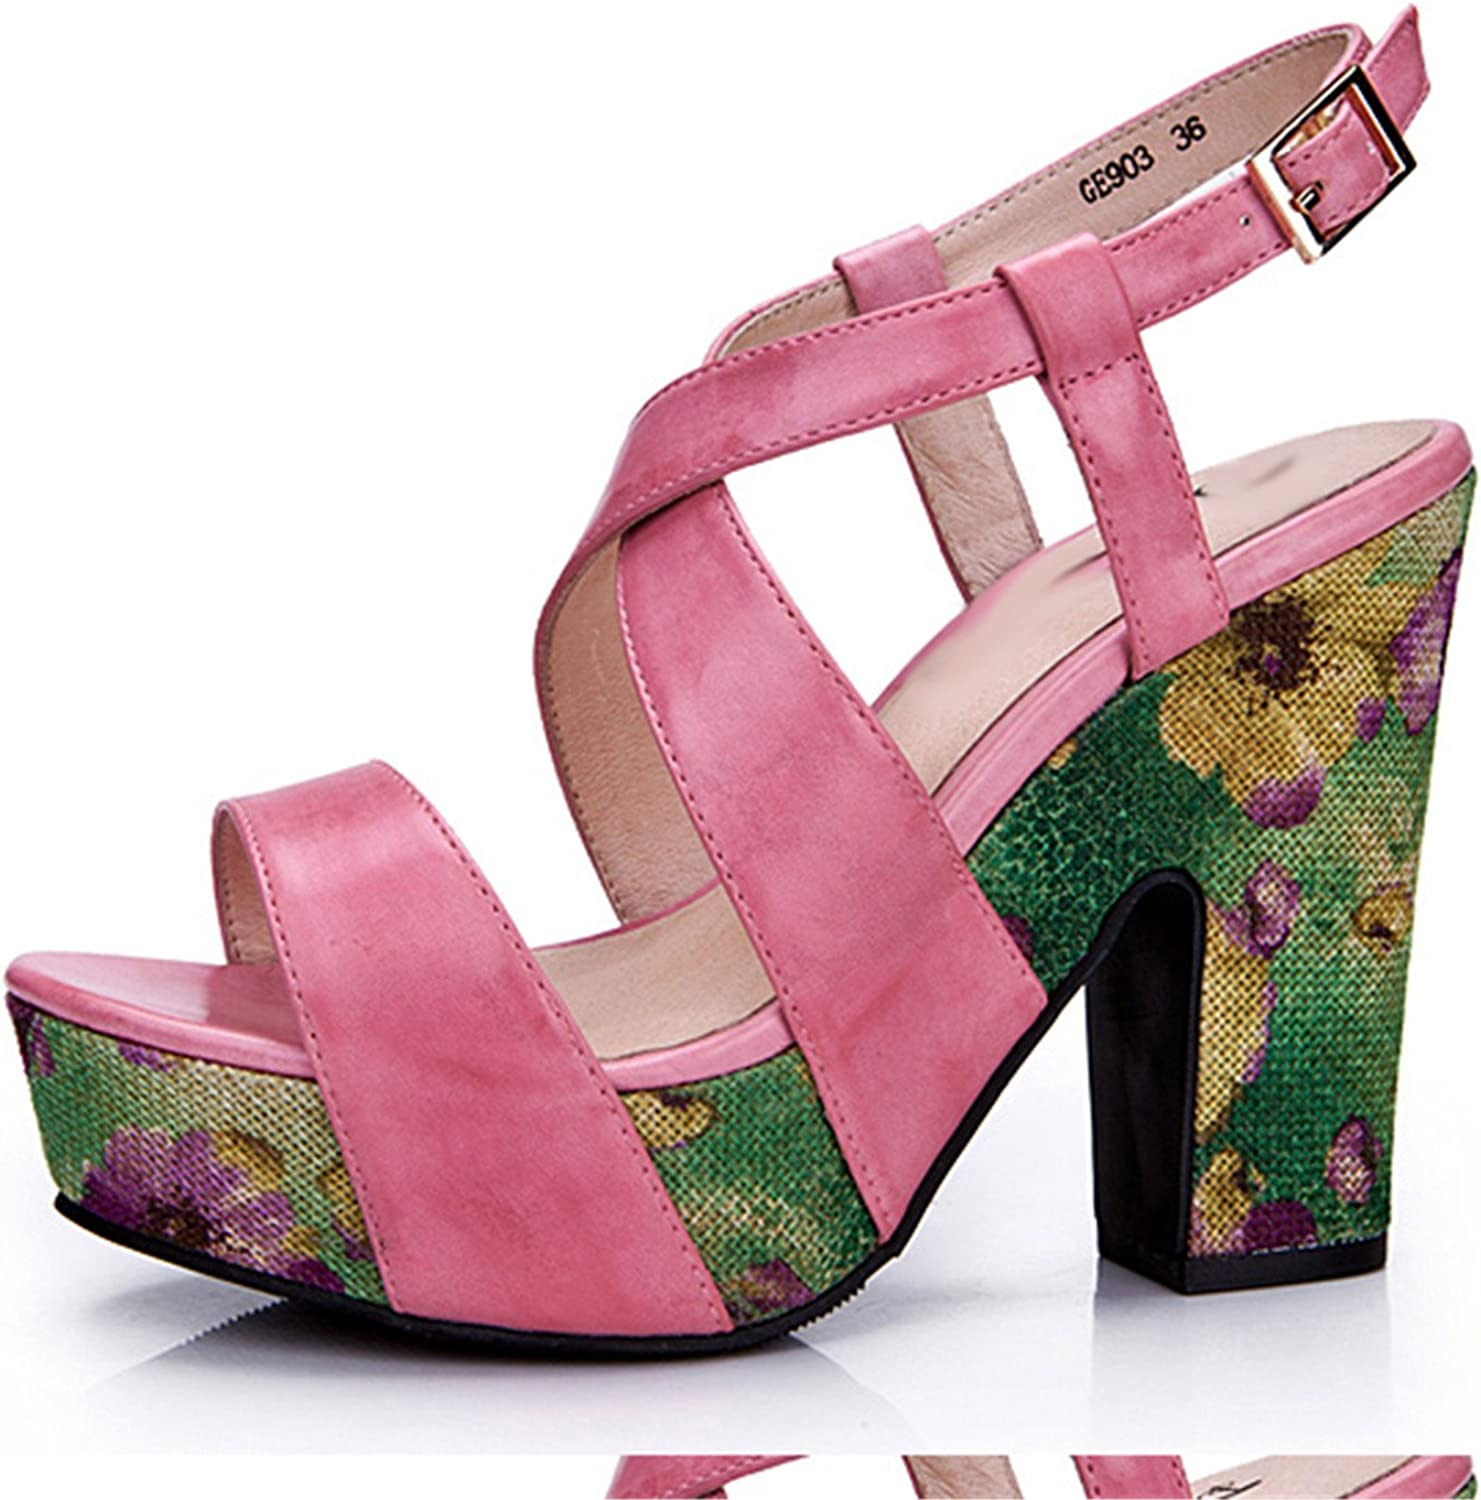 Karl Conner Women Pink Leather Sandals Platform High Heels Sandals